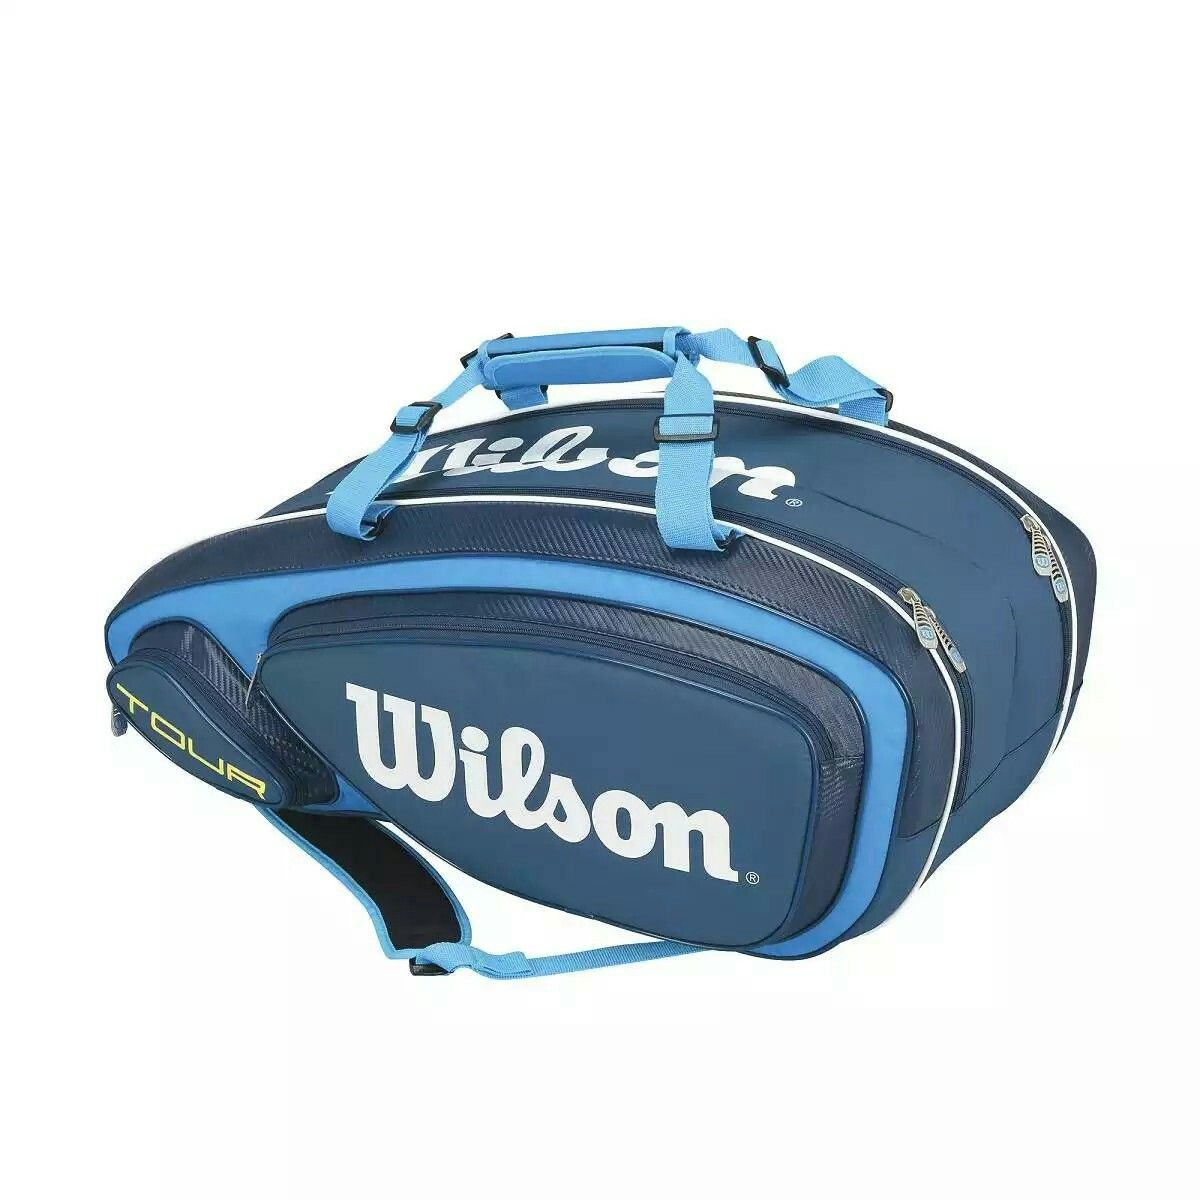 Pin by Kaitlynn Sholey on Tennis Tennis racket bag